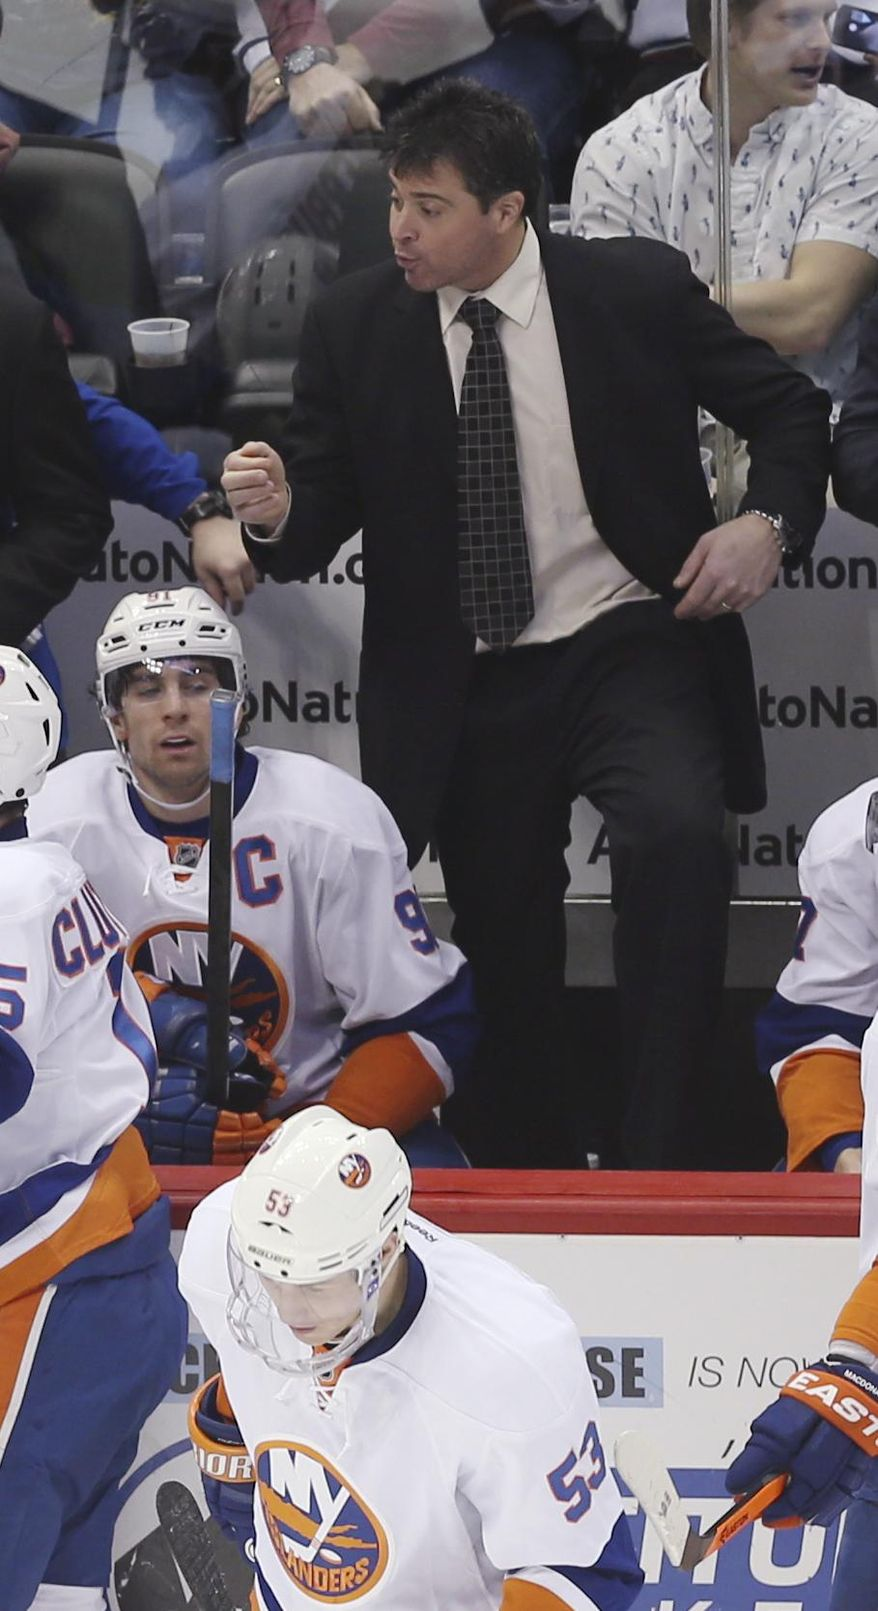 New York Islanders coach Jack Capuano argues a call against his team while facing the Colorado Avalanche in the second period of an NHL hockey game in Denver on Friday, Jan. 10, 2014. (AP Photo/David Zalubowski)